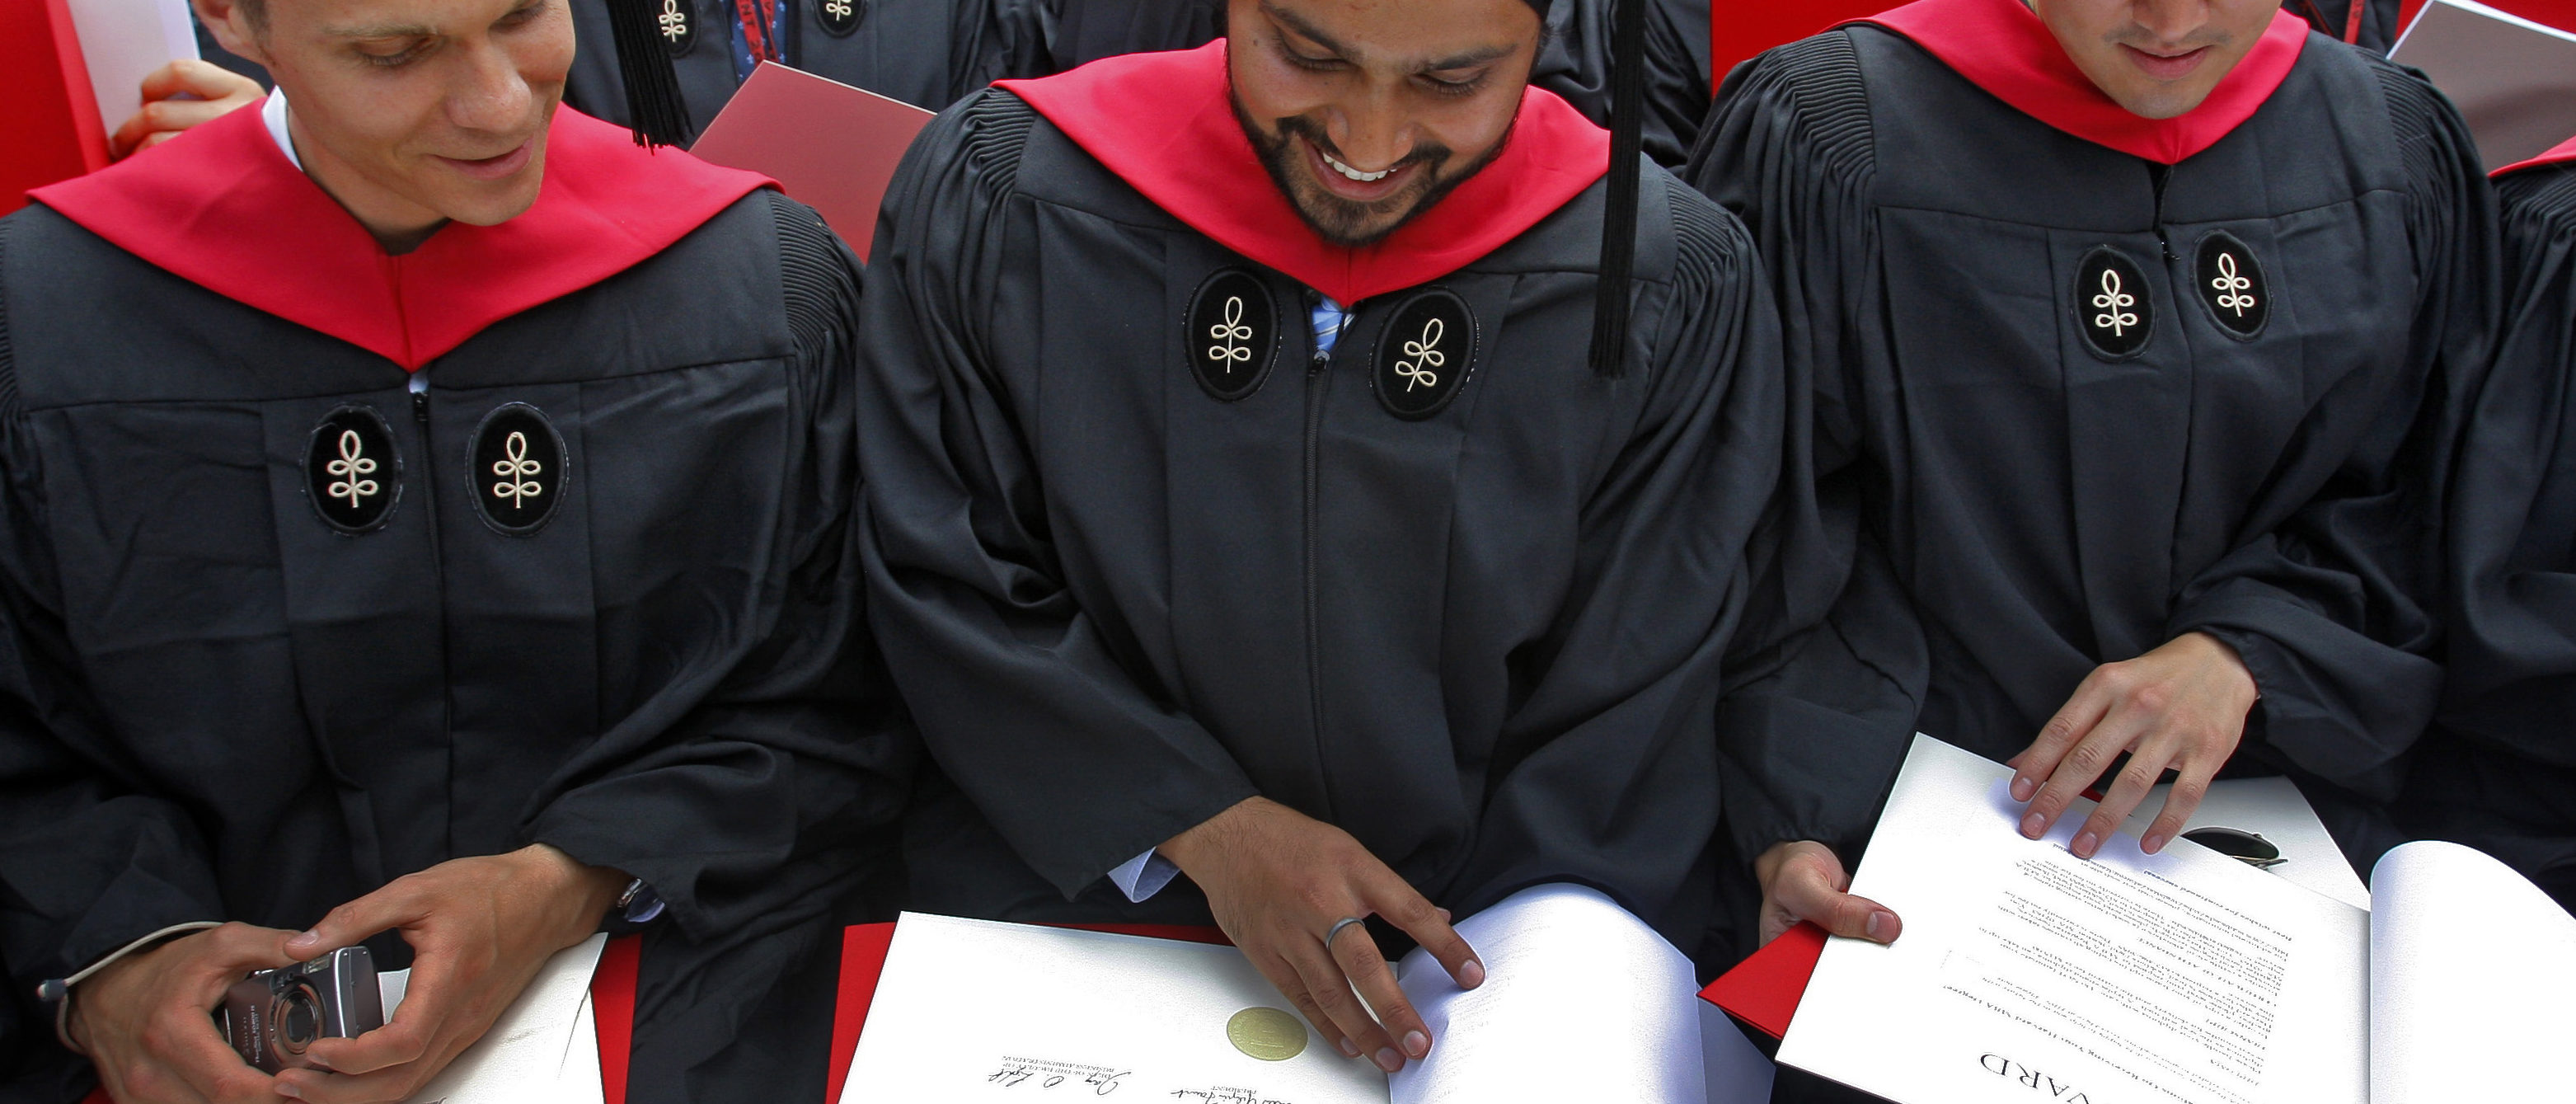 Students look at their diplomas at the Harvard Business School's graduation ceremonies in Boston, Massachusetts following Harvard University's 358th Commencement June 4, 2009. REUTERS/Brian Snyder